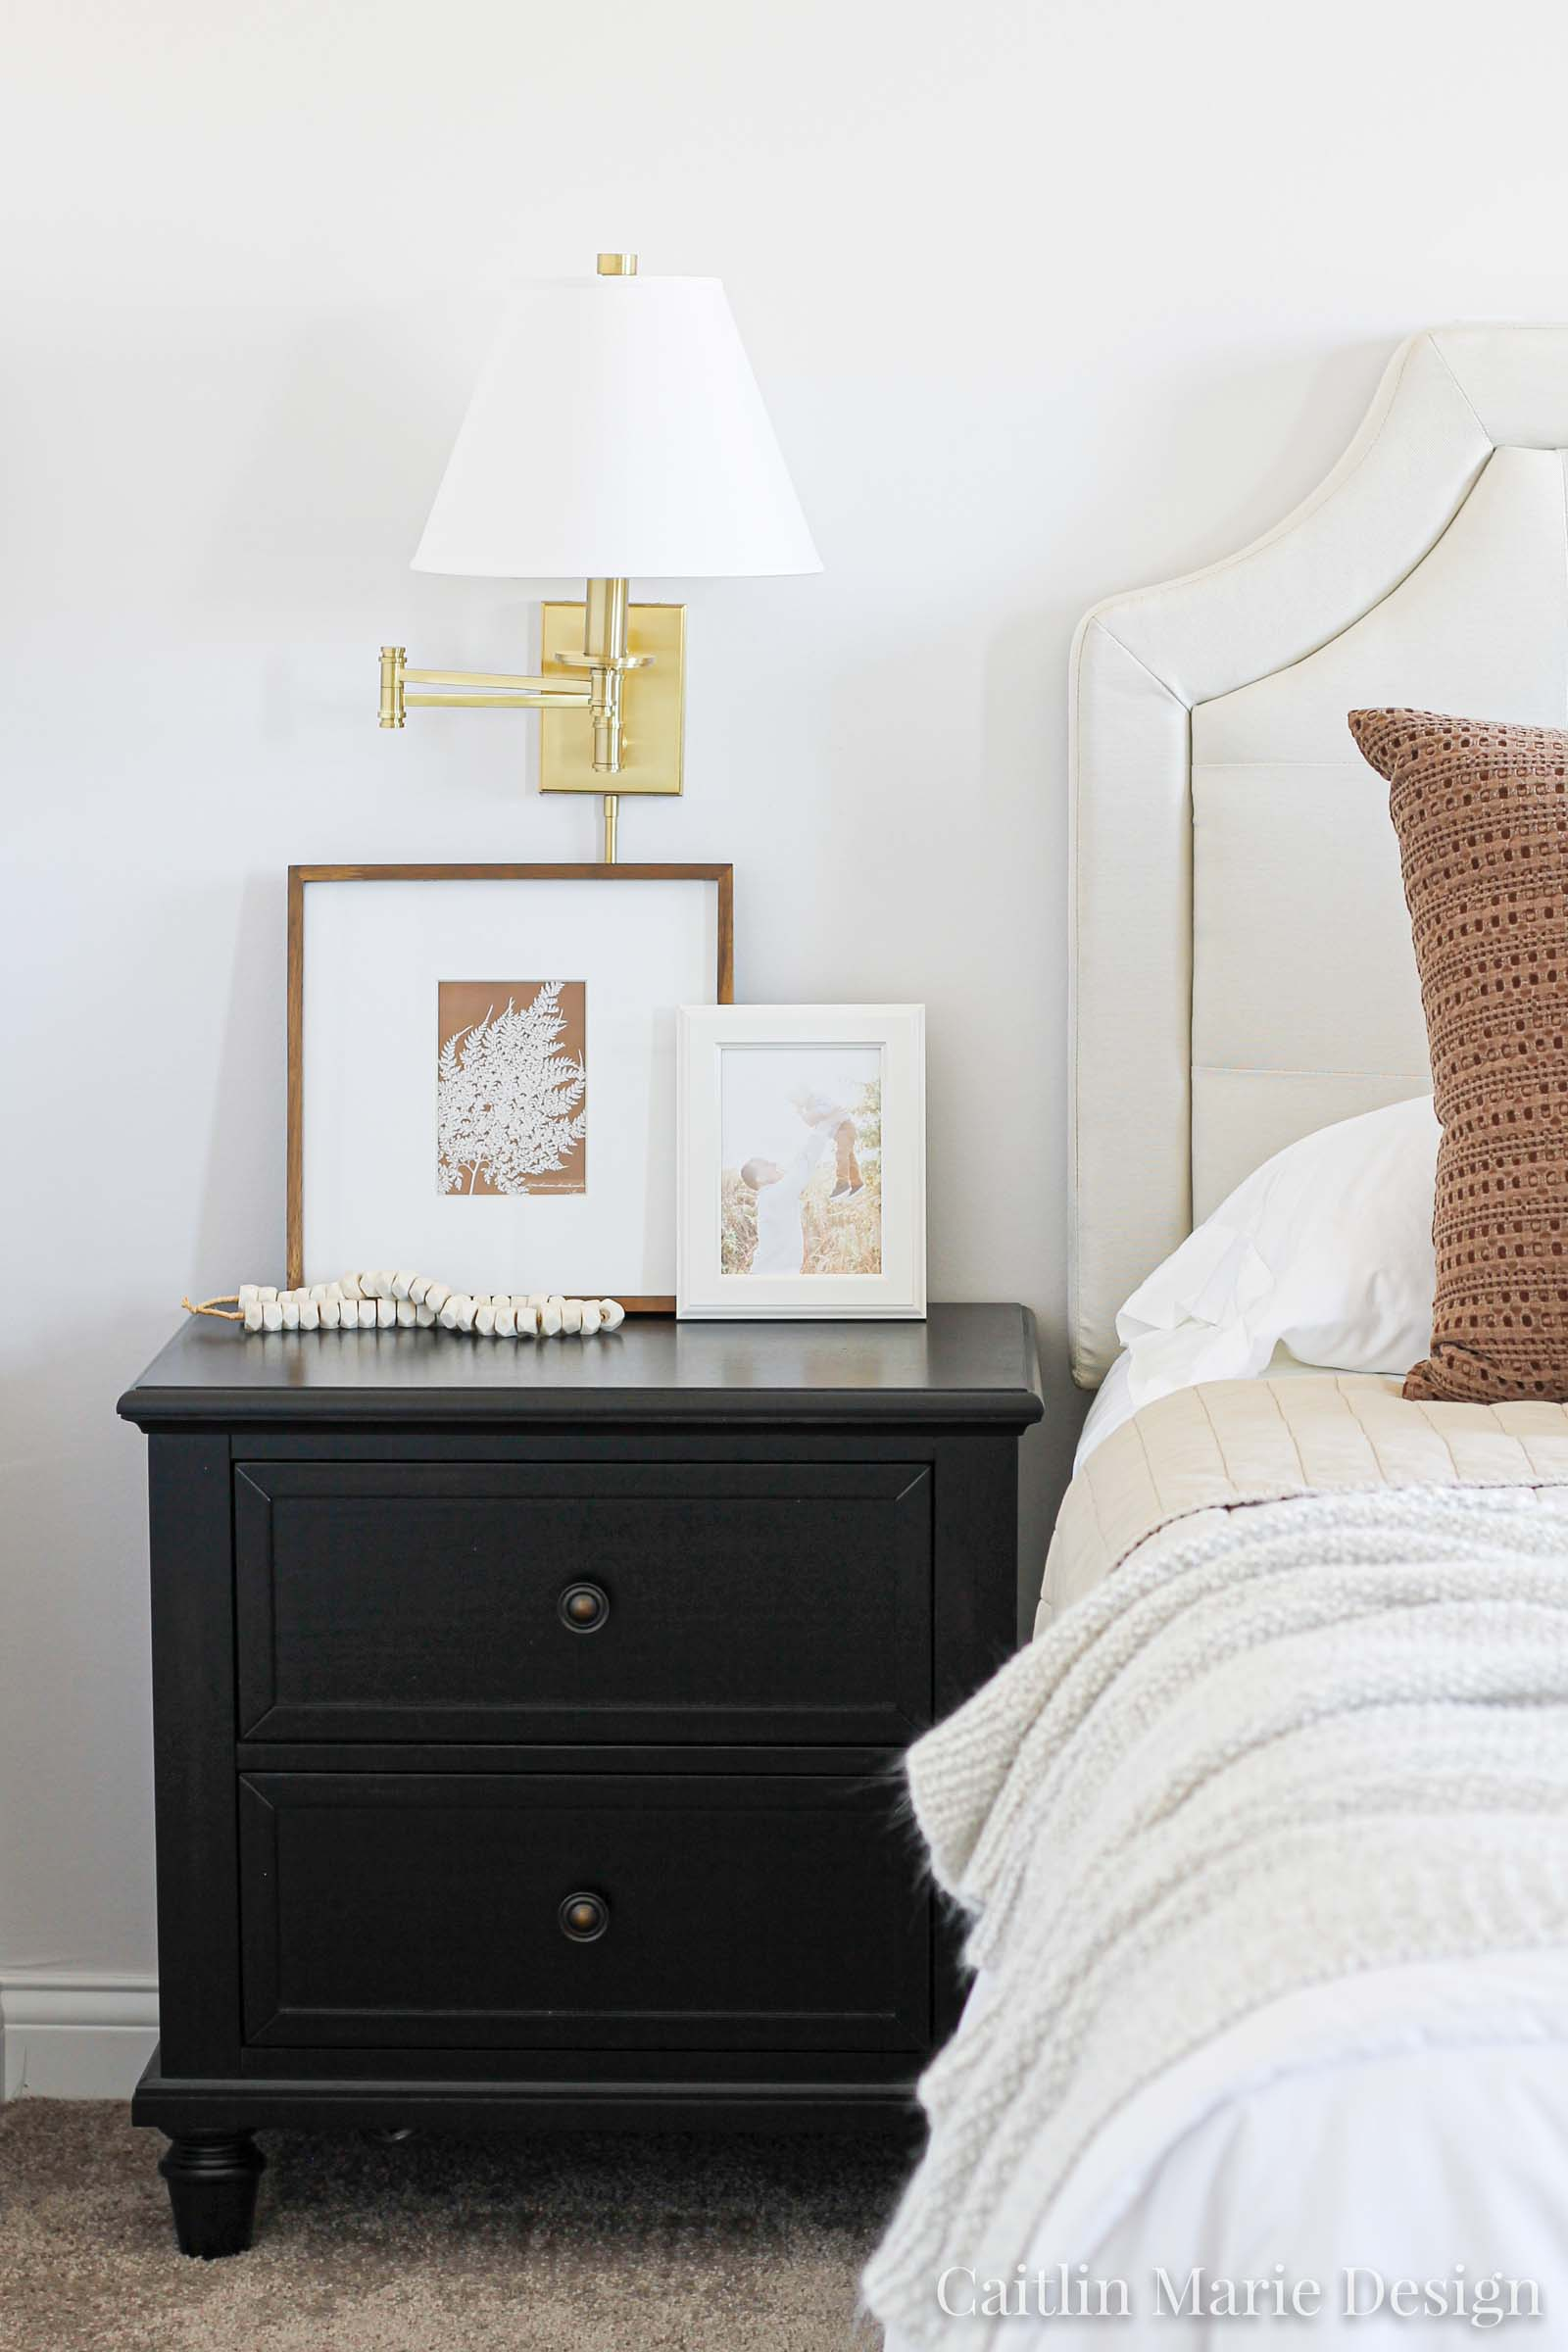 How To Style Nightstands Orc Week 5 Caitlin Marie Design